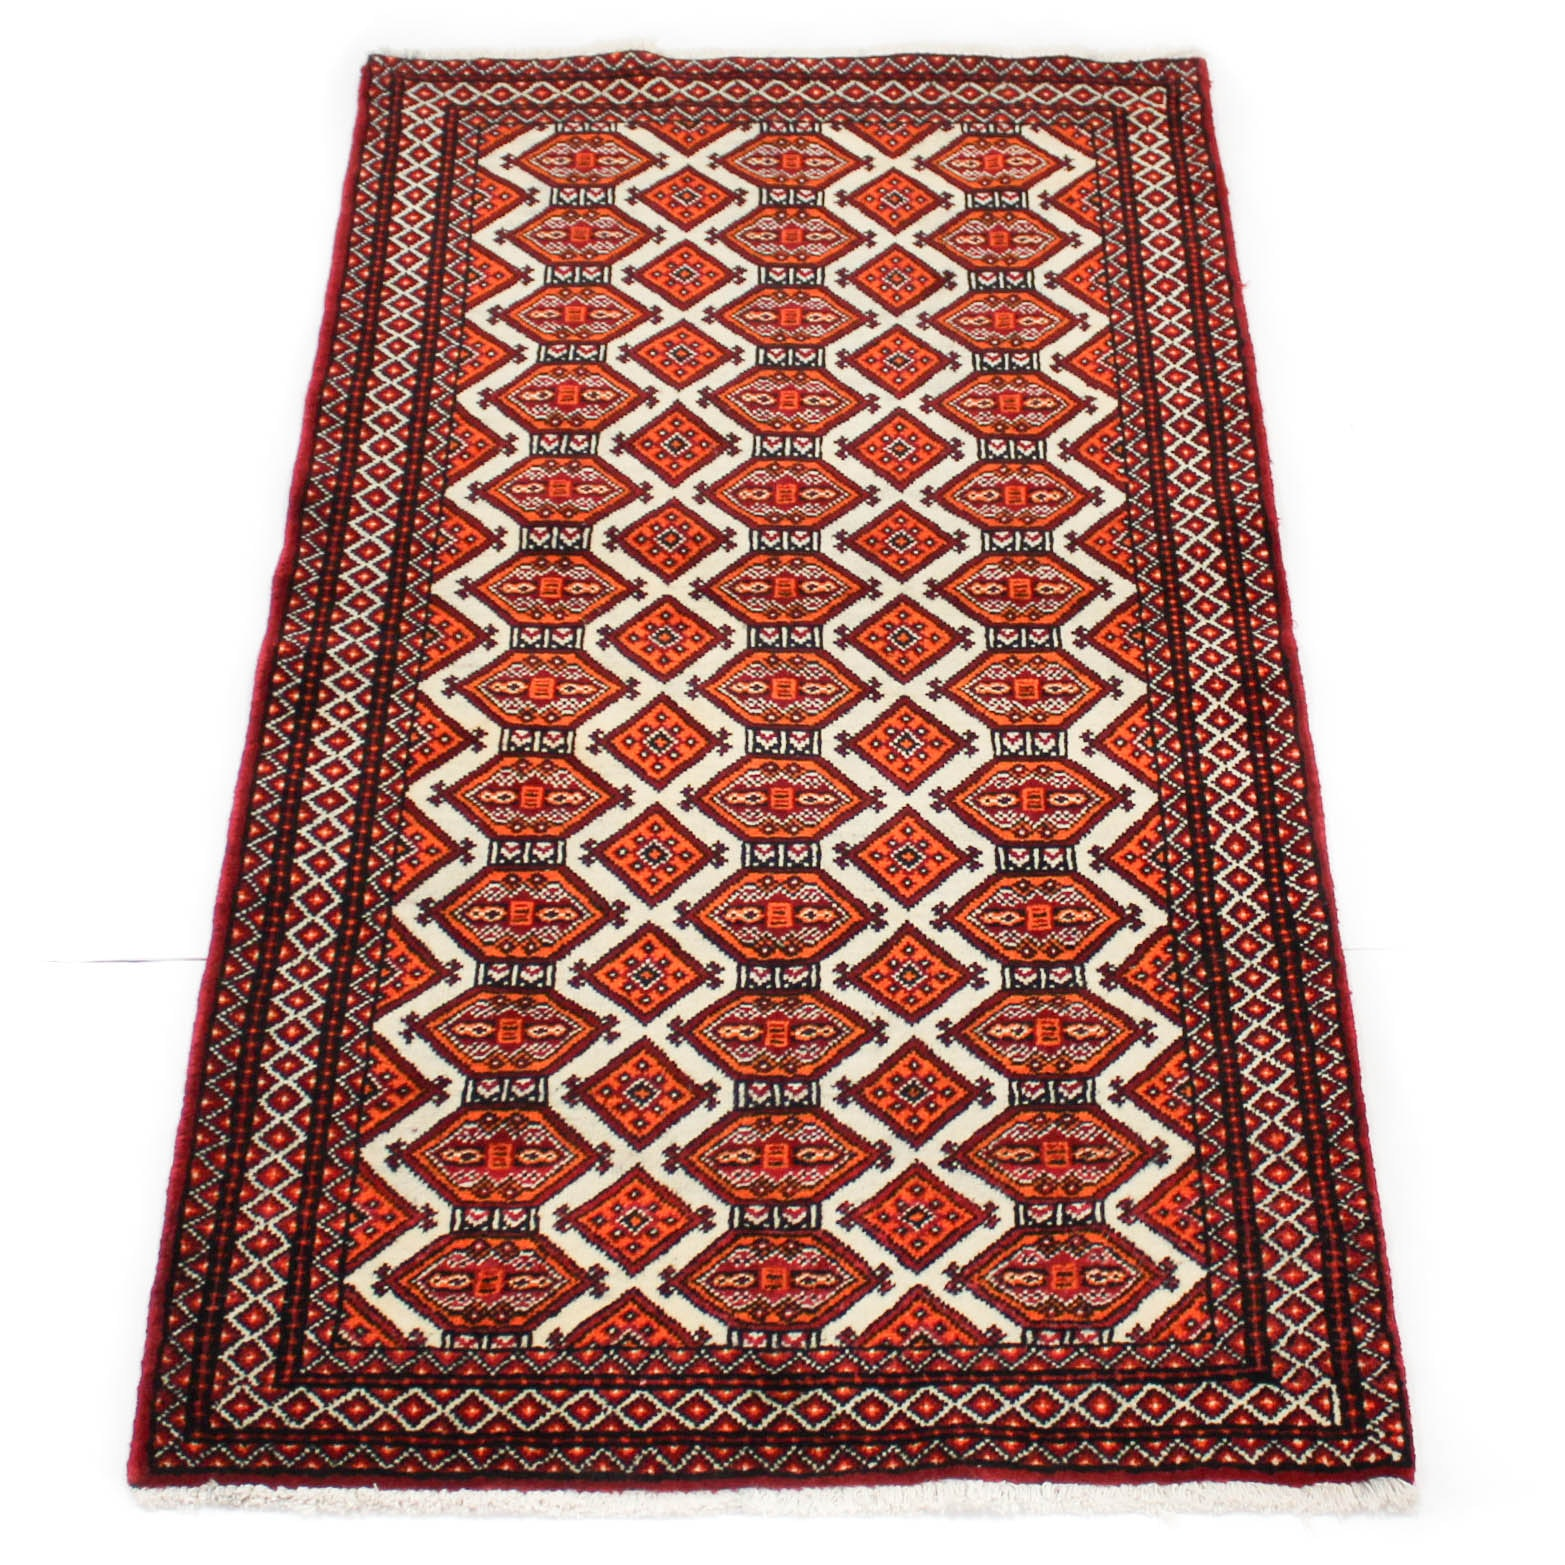 Semi-Antique Hand-Knotted Persian Baluch Area Rug